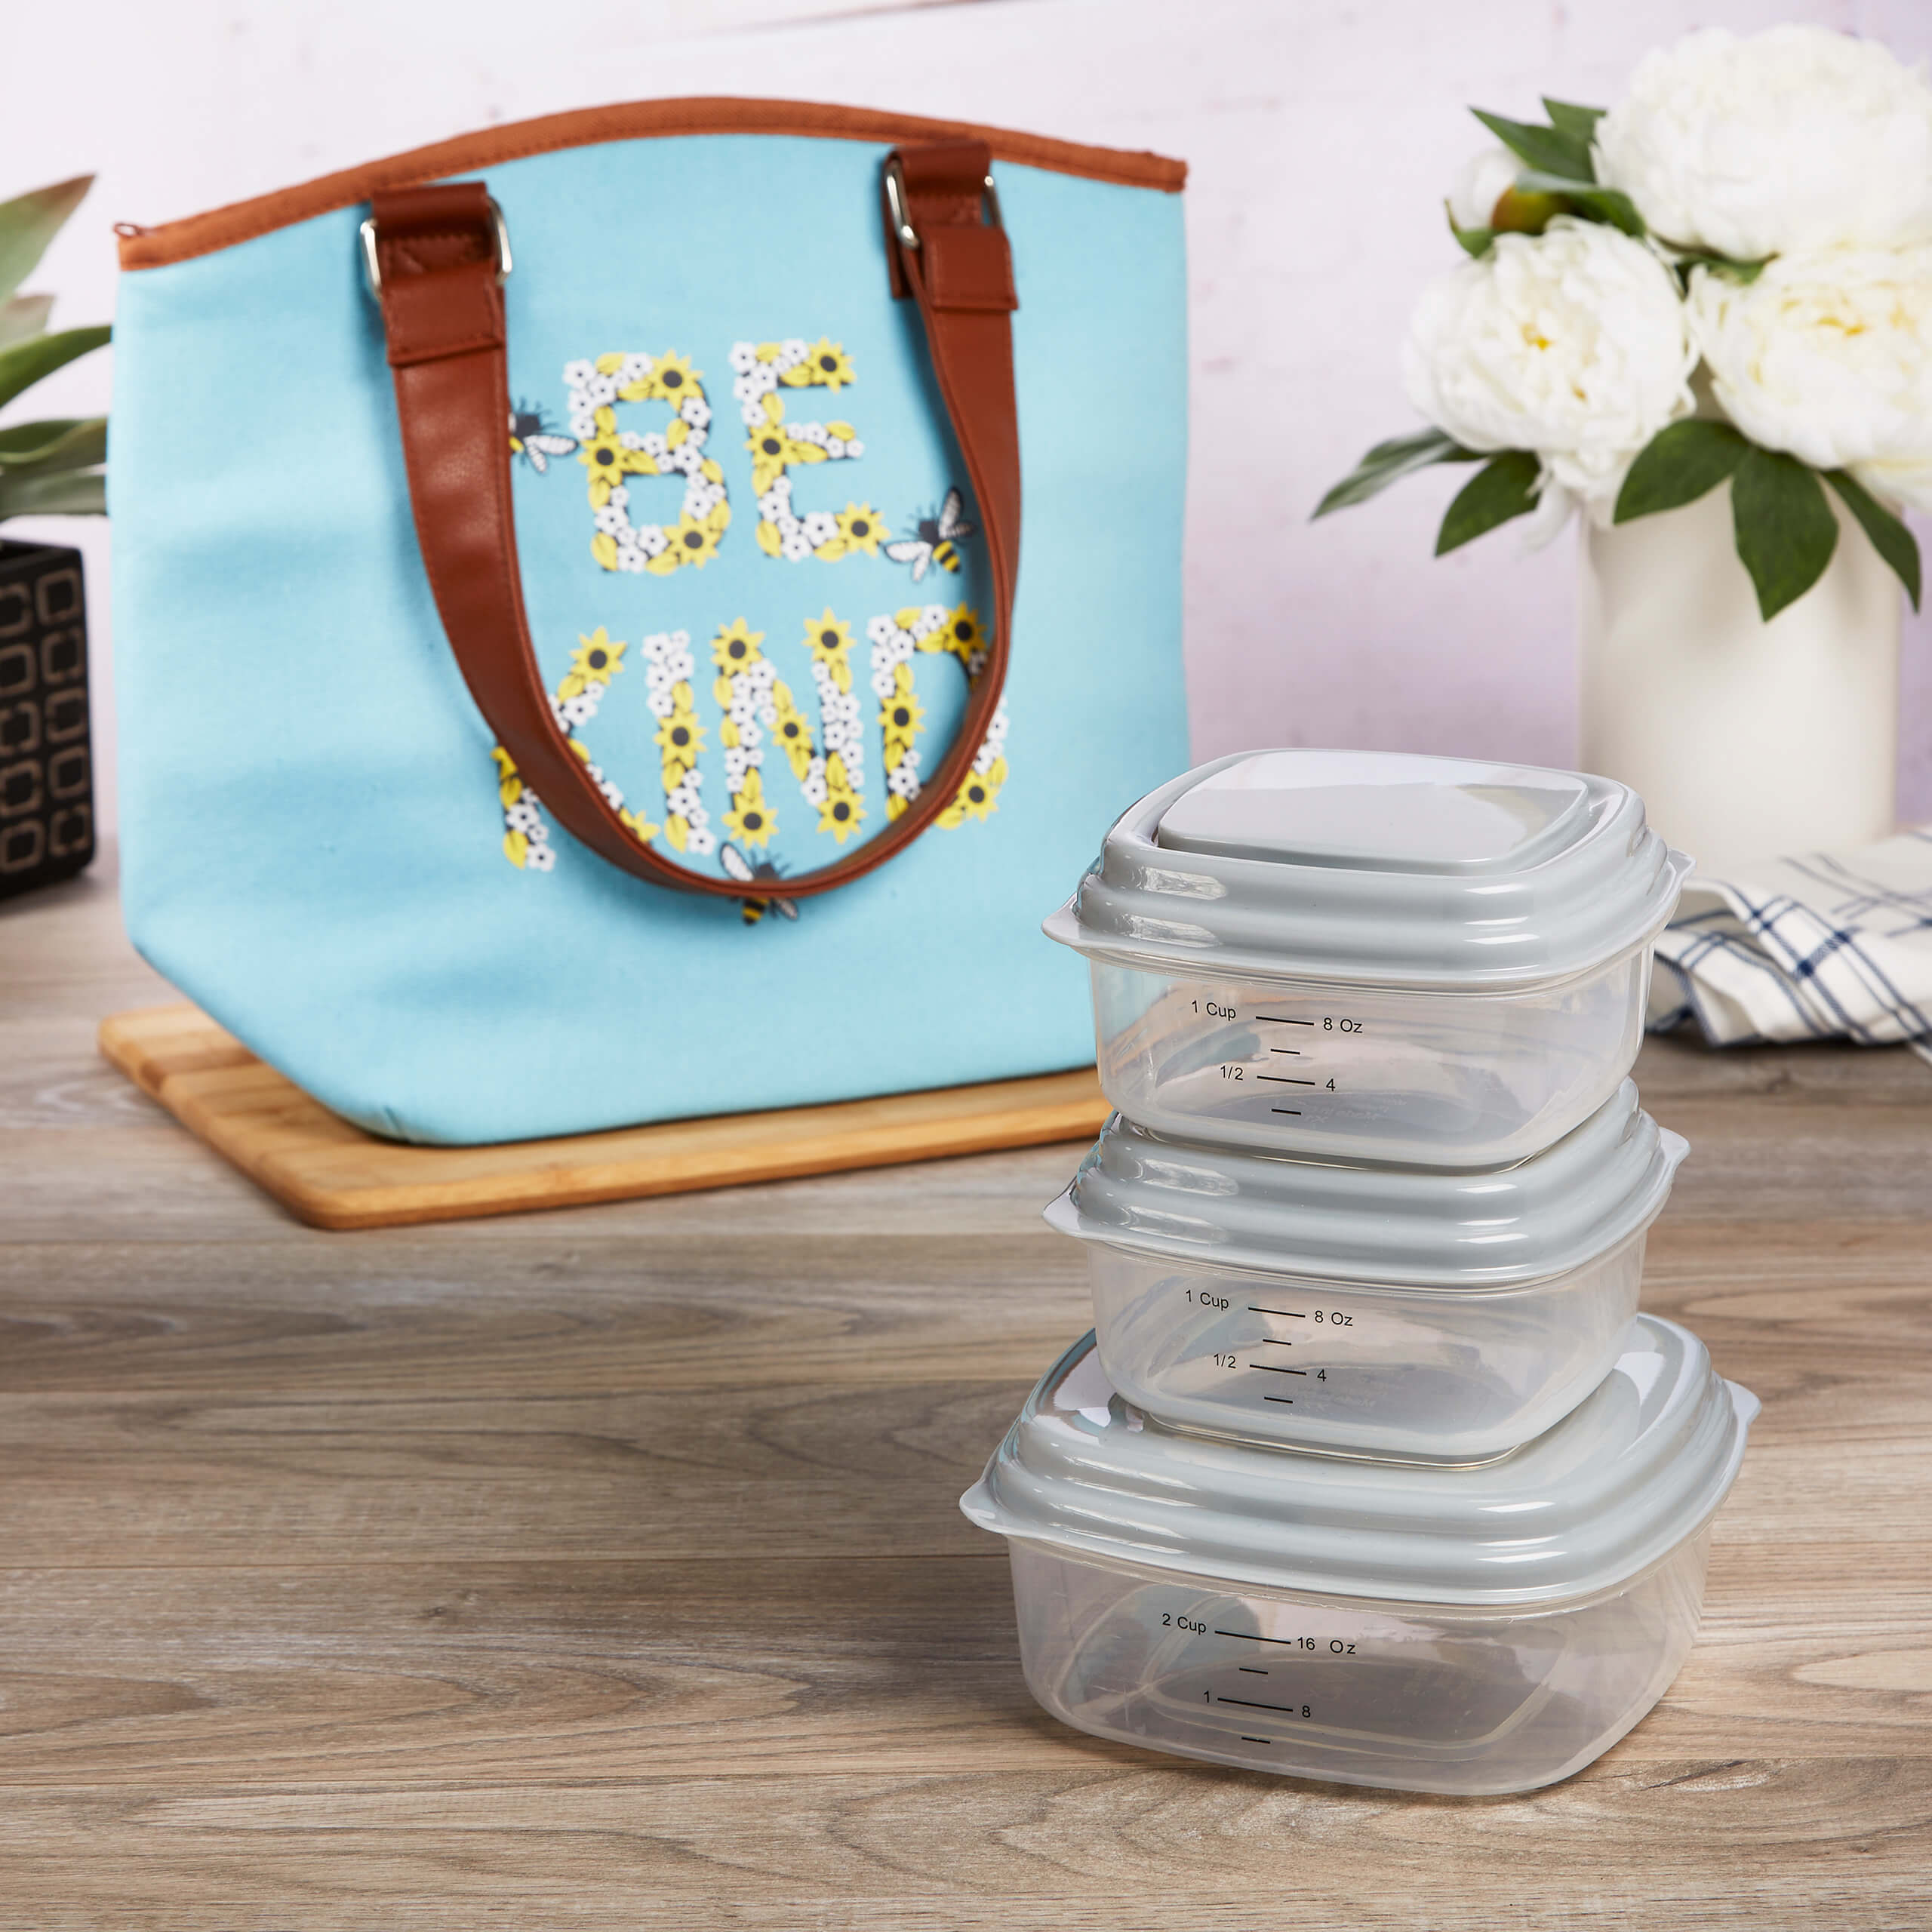 Mckinney Insulated Lunch Bag Set With Reusable Containers